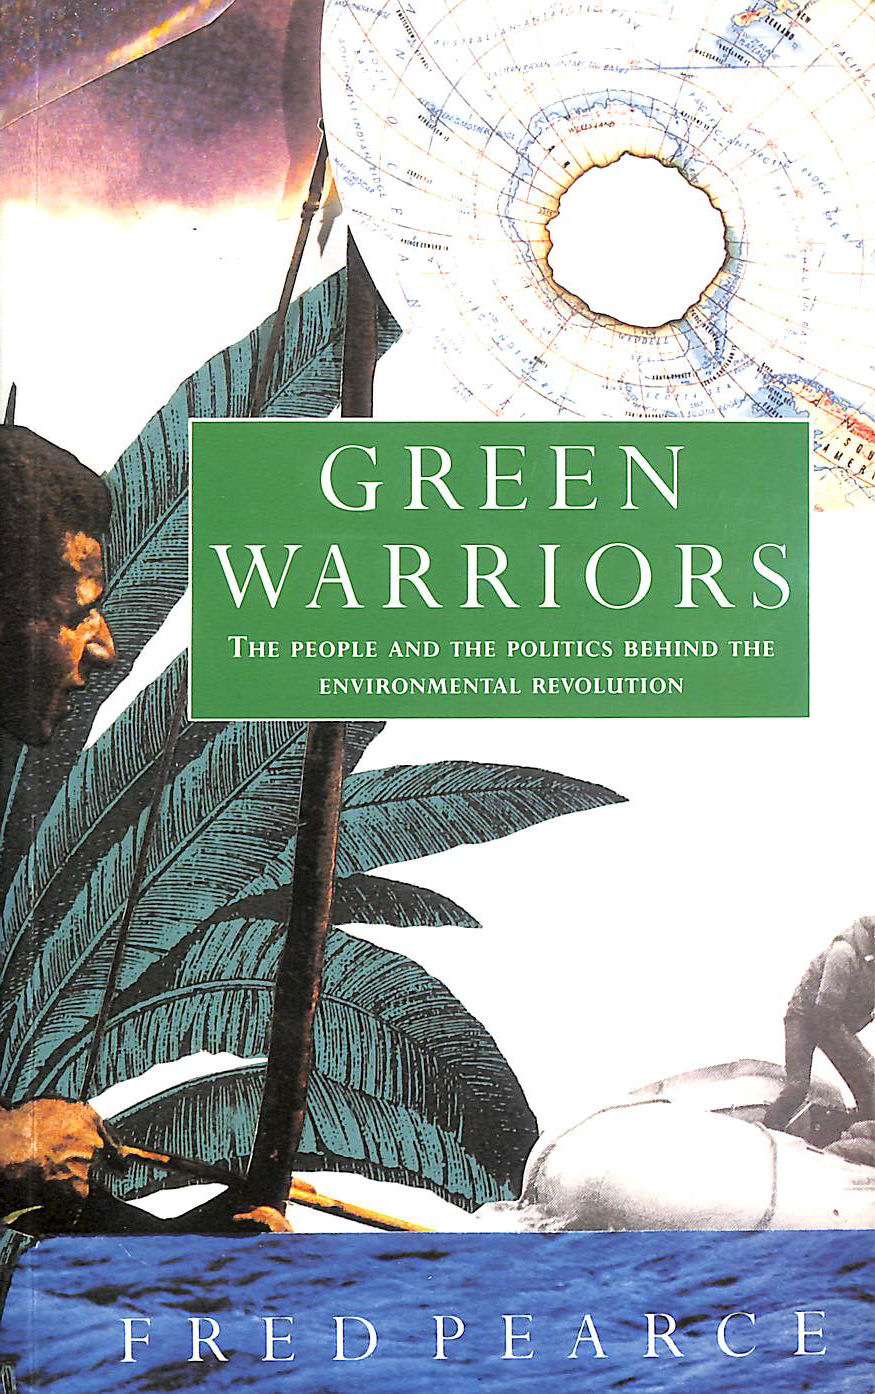 Image for Green Warriors: The People and the Politics behind the Environmental Revolution.